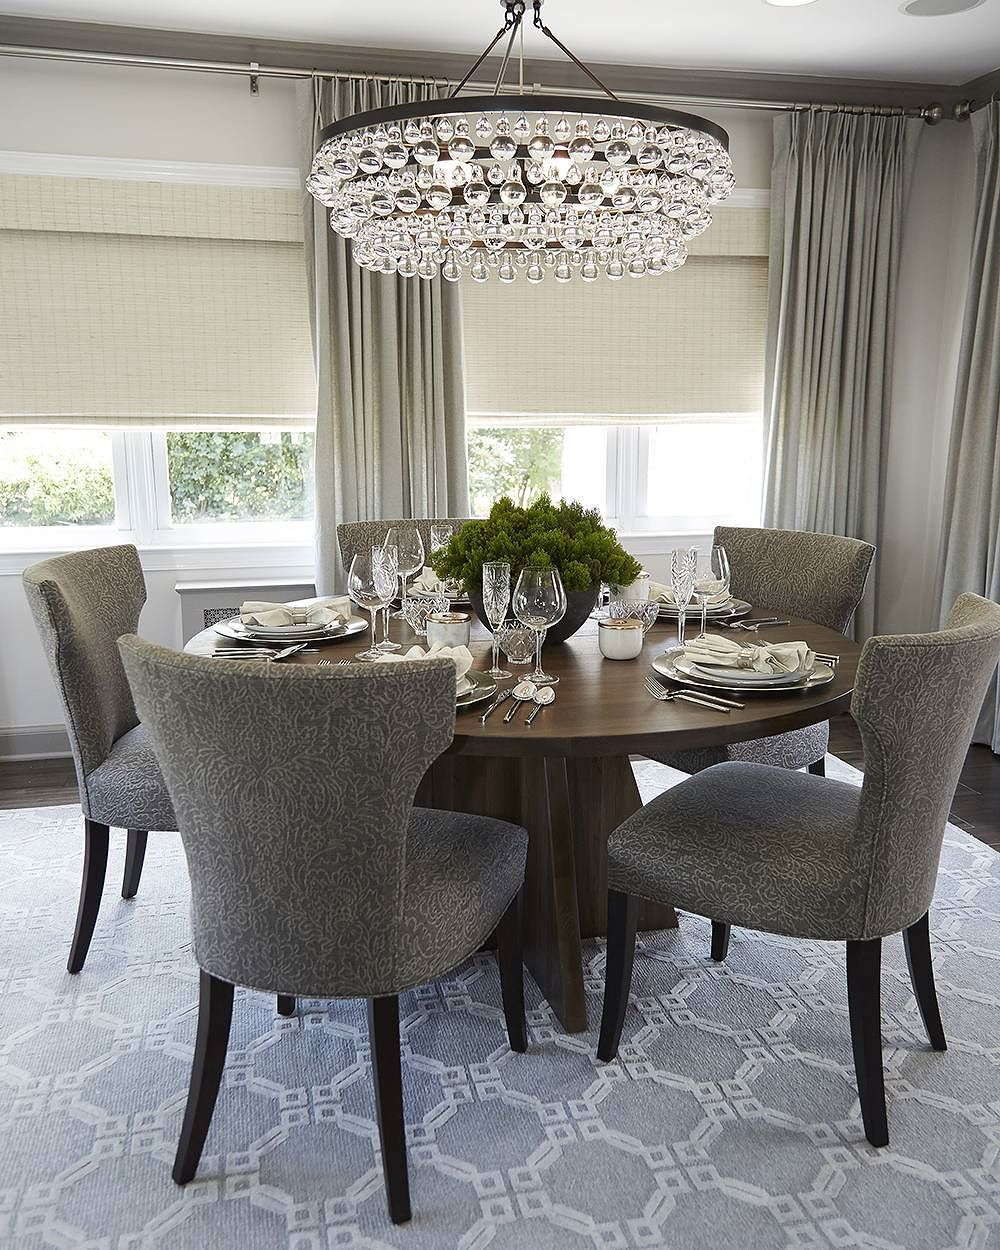 32 Stylish Dining Room Ideas To Impress Your Dinner Guests: Unique Dining Room, Luxury Dining